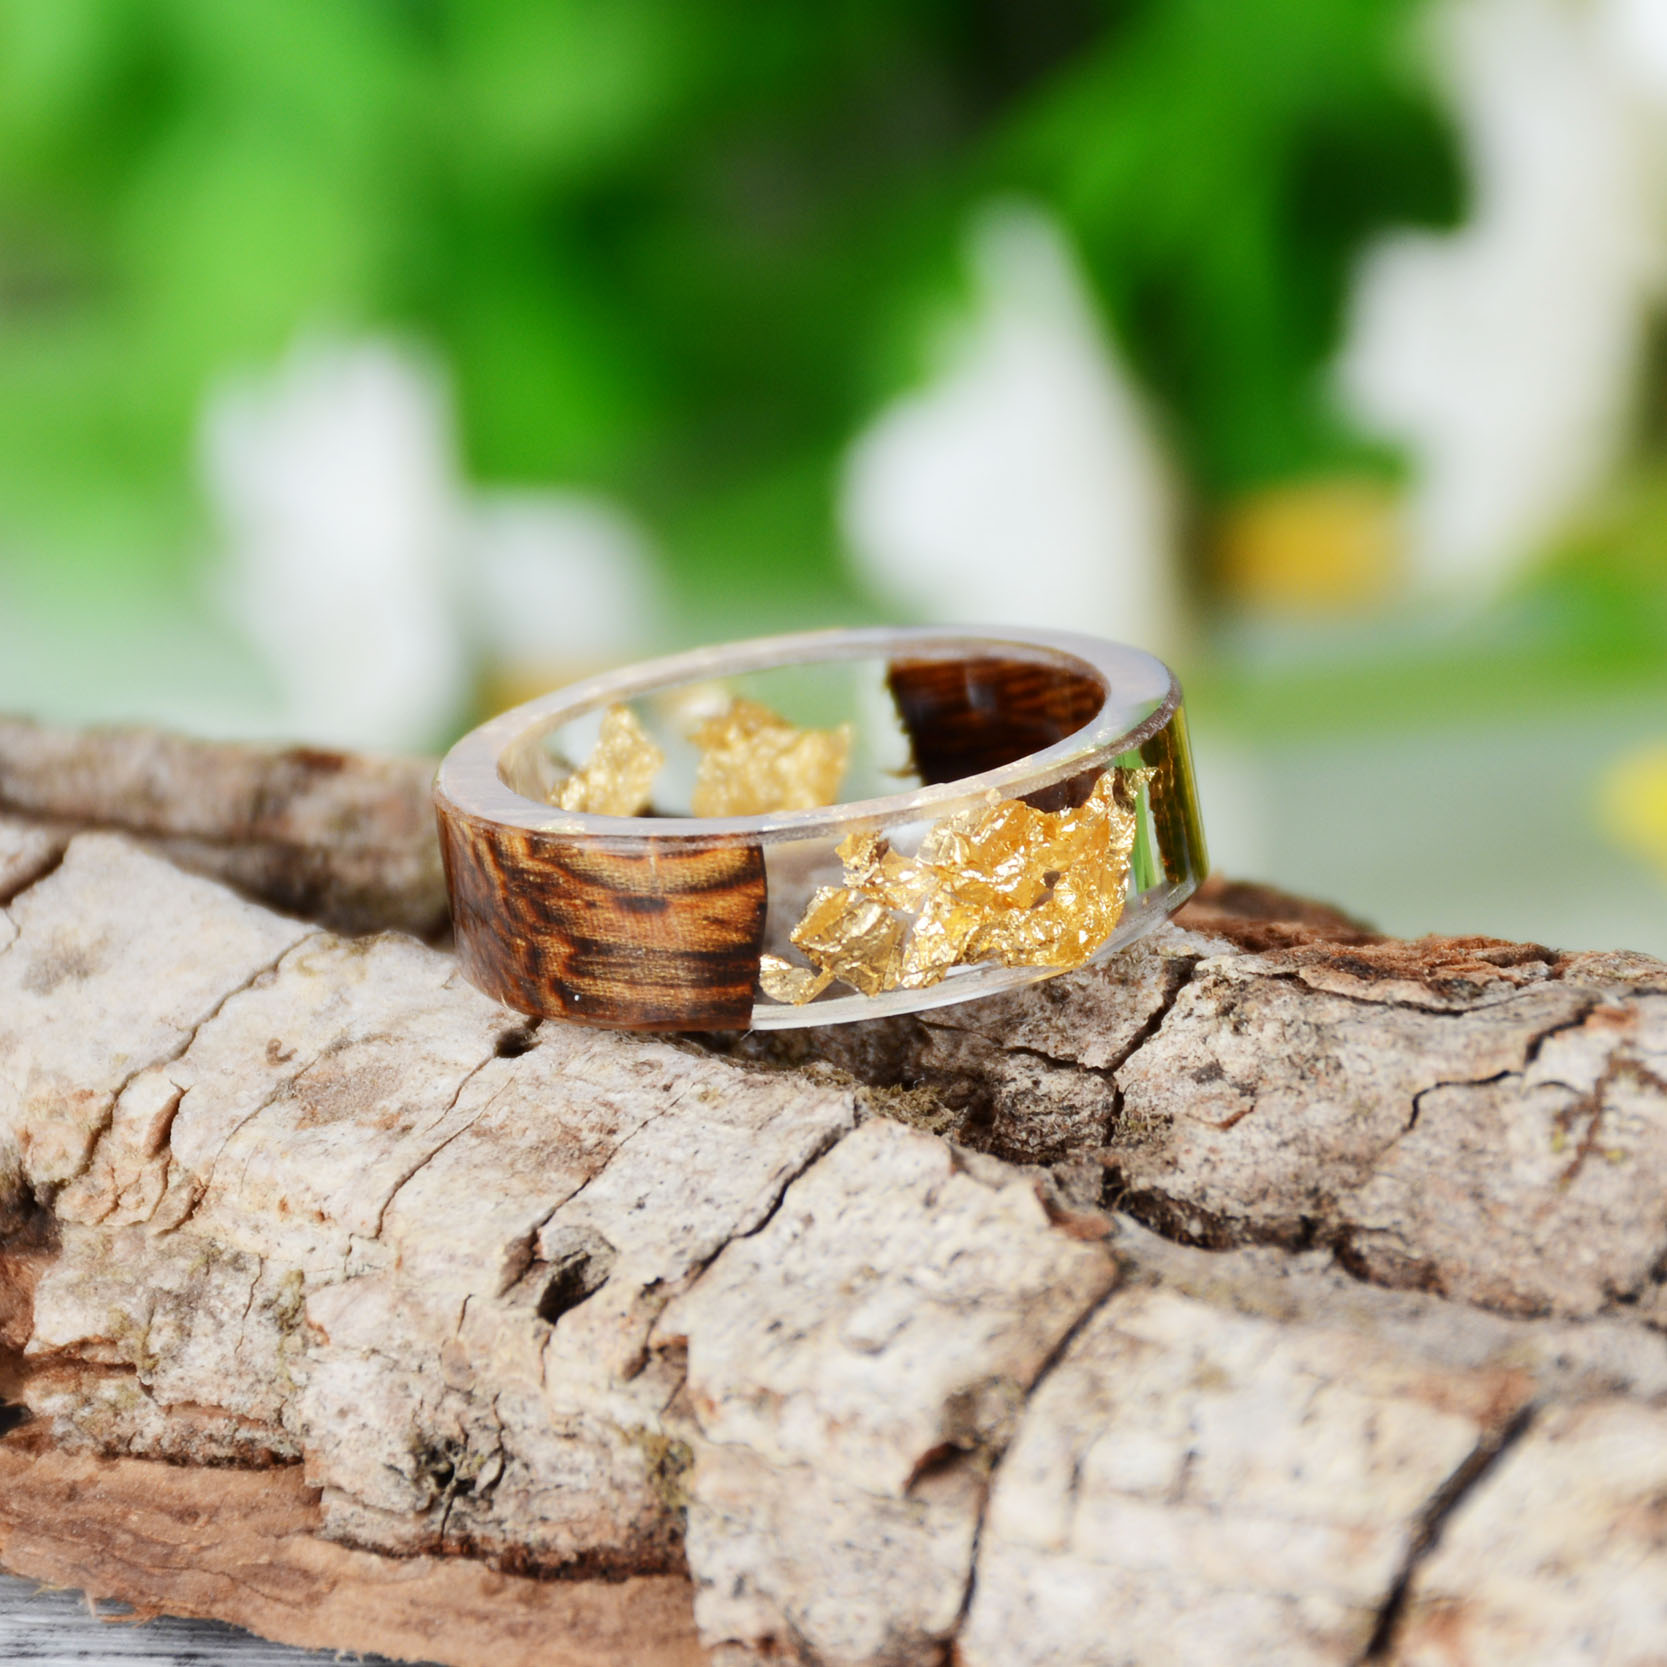 HTB1jxcRKb9YBuNjy0Fgq6AxcXXa5 - Hot Sale Handmade Wood Resin Ring Dried Flowers Plants Inside Jewelry Resin Ring Transparent Anniversary Ring for Women